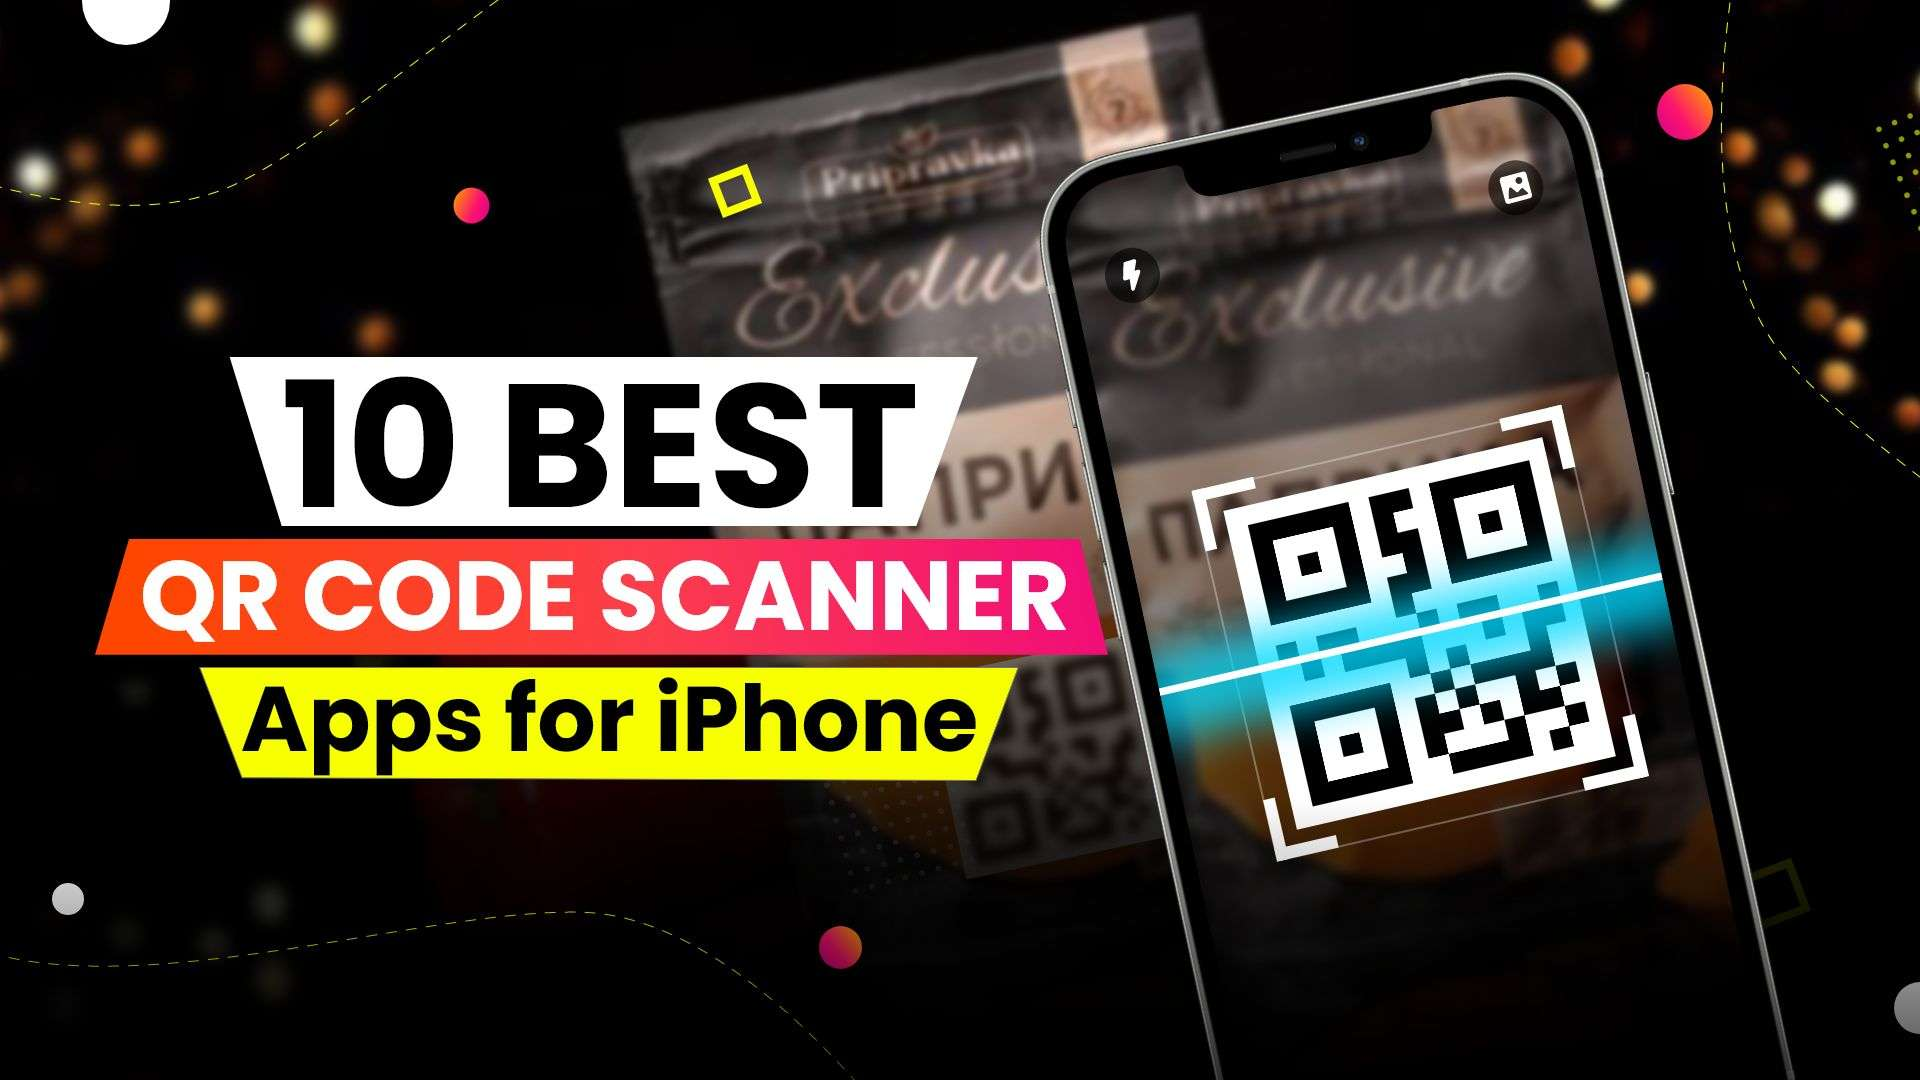 QR reader apps for iPhone